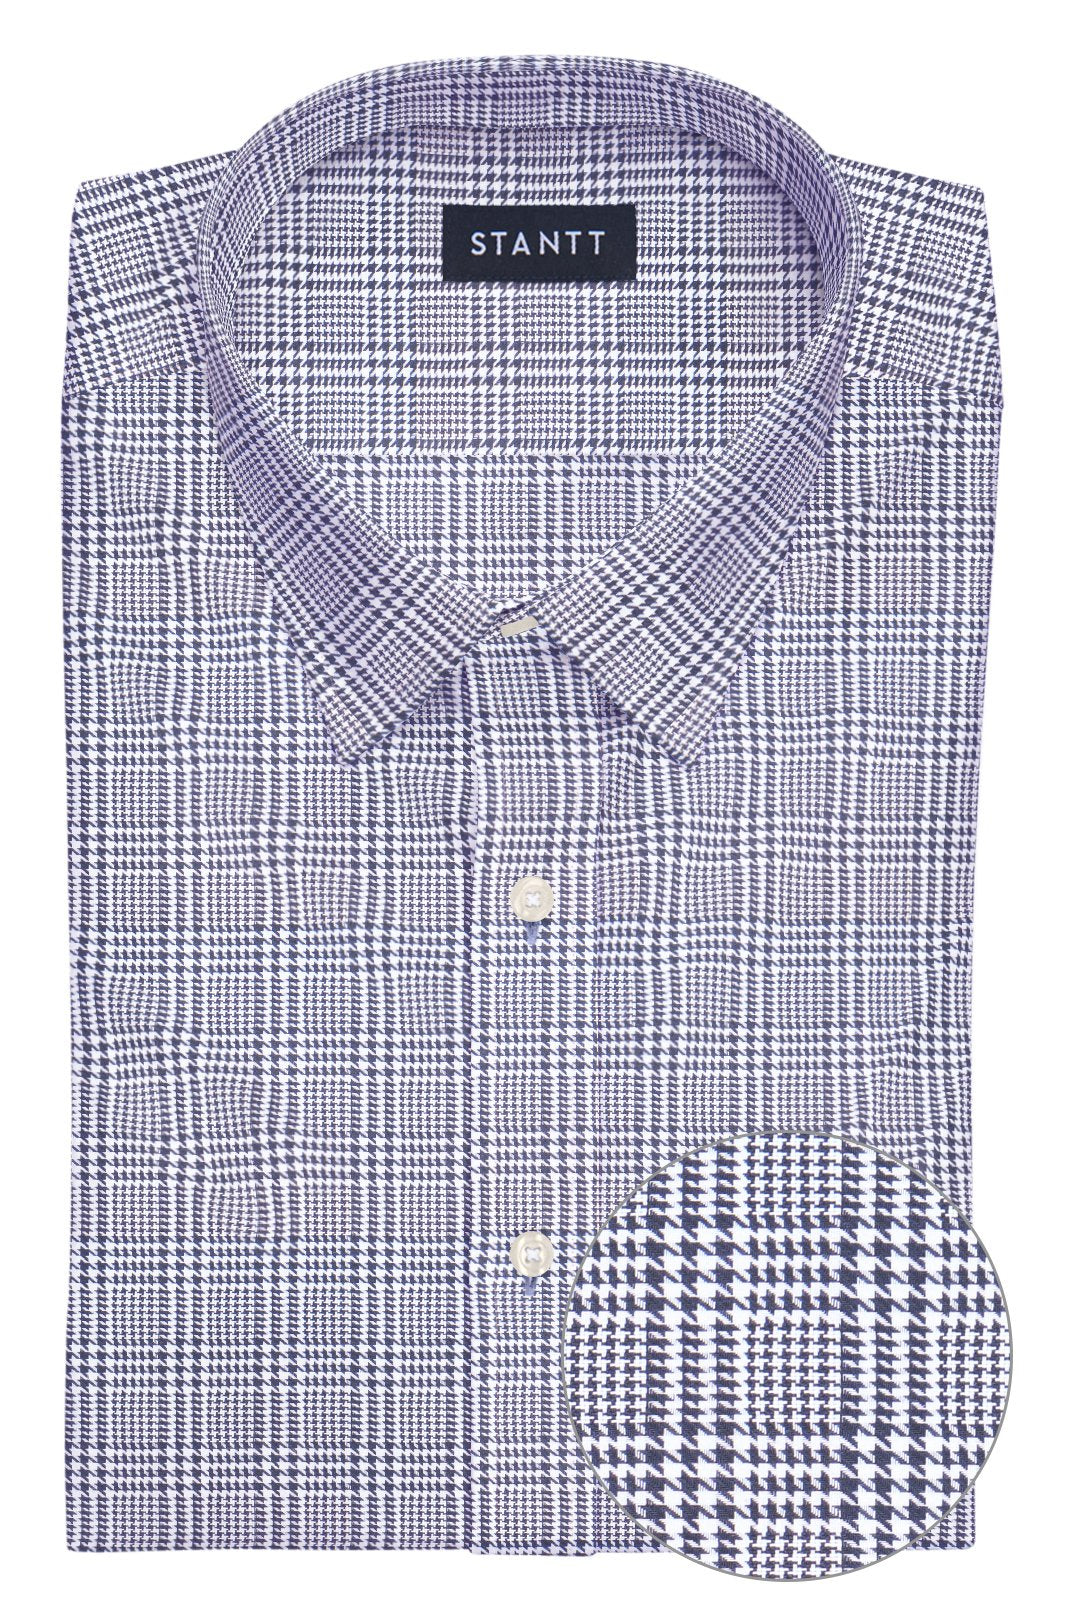 Black Prince of Wales Check: Semi-Spread Collar, Barrel Cuff